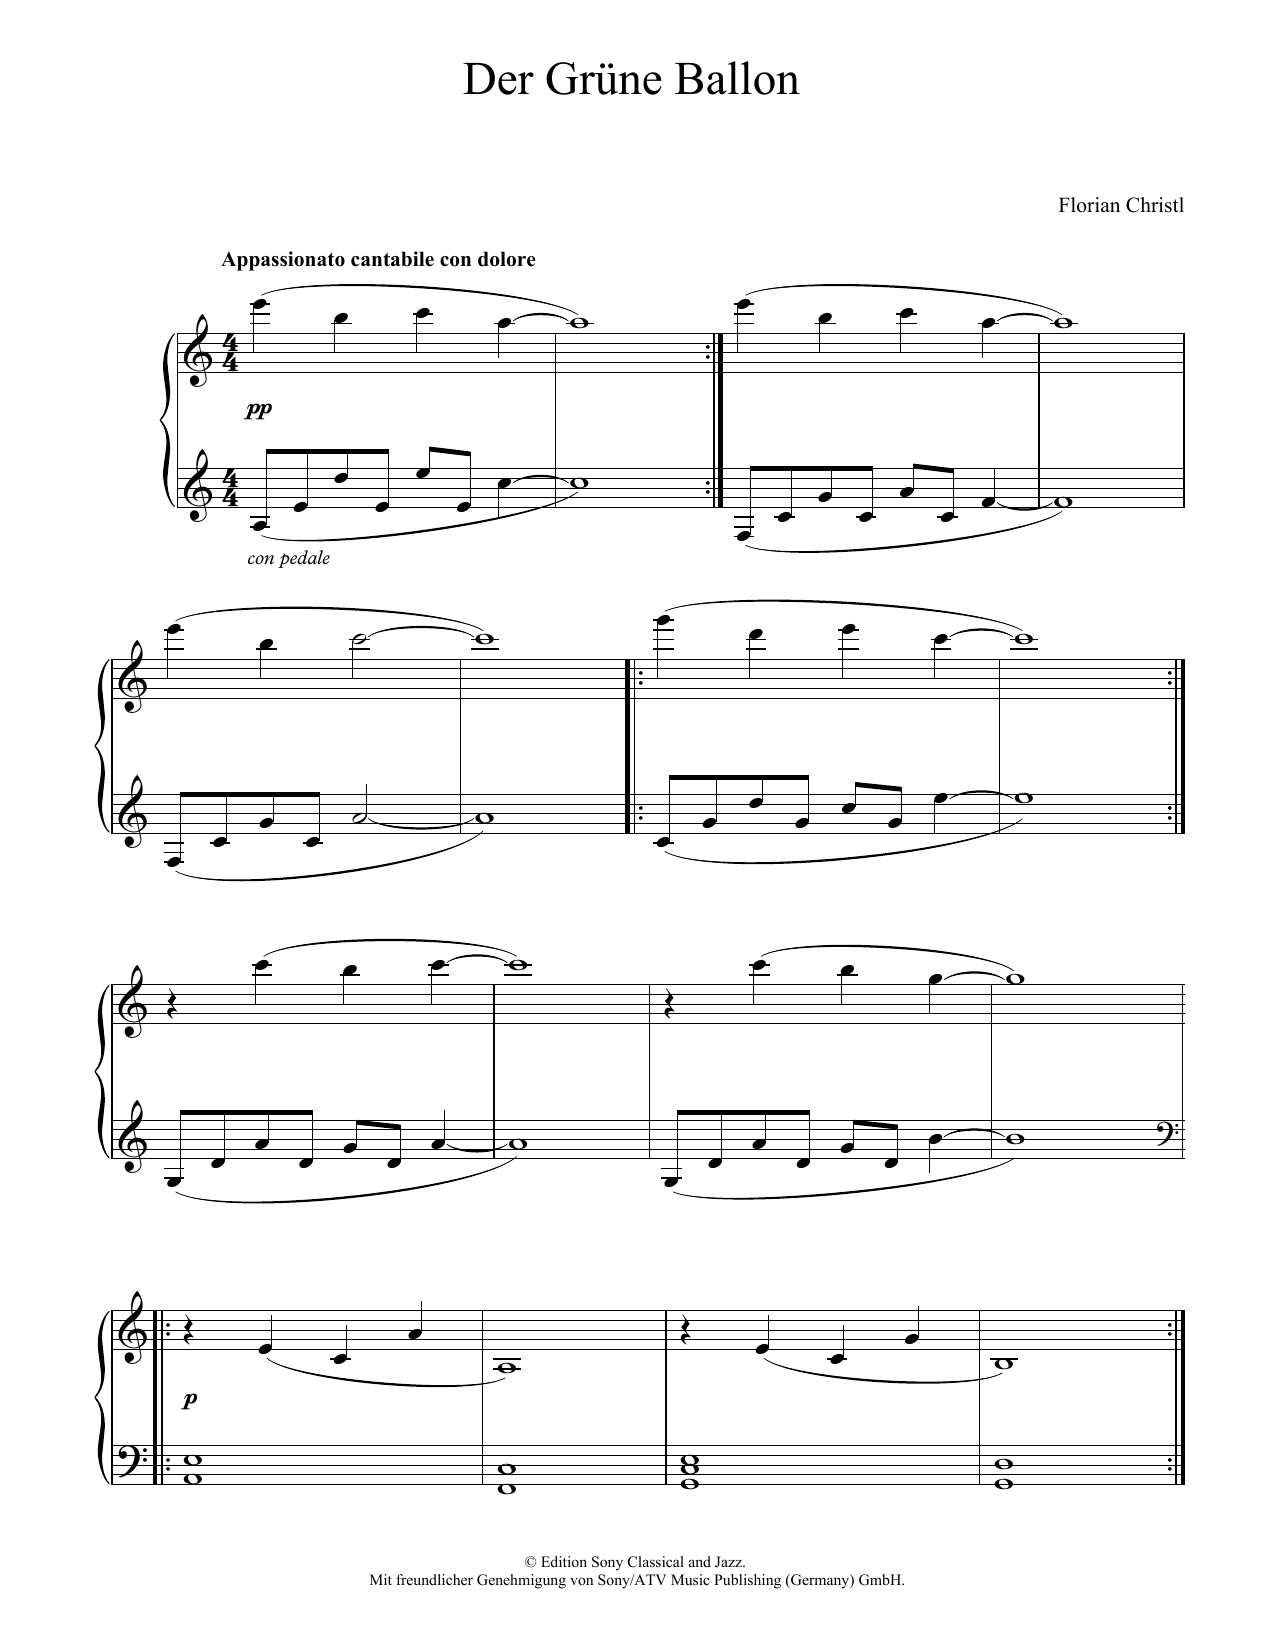 Florian Christl Der Gruene Ballon sheet music notes and chords